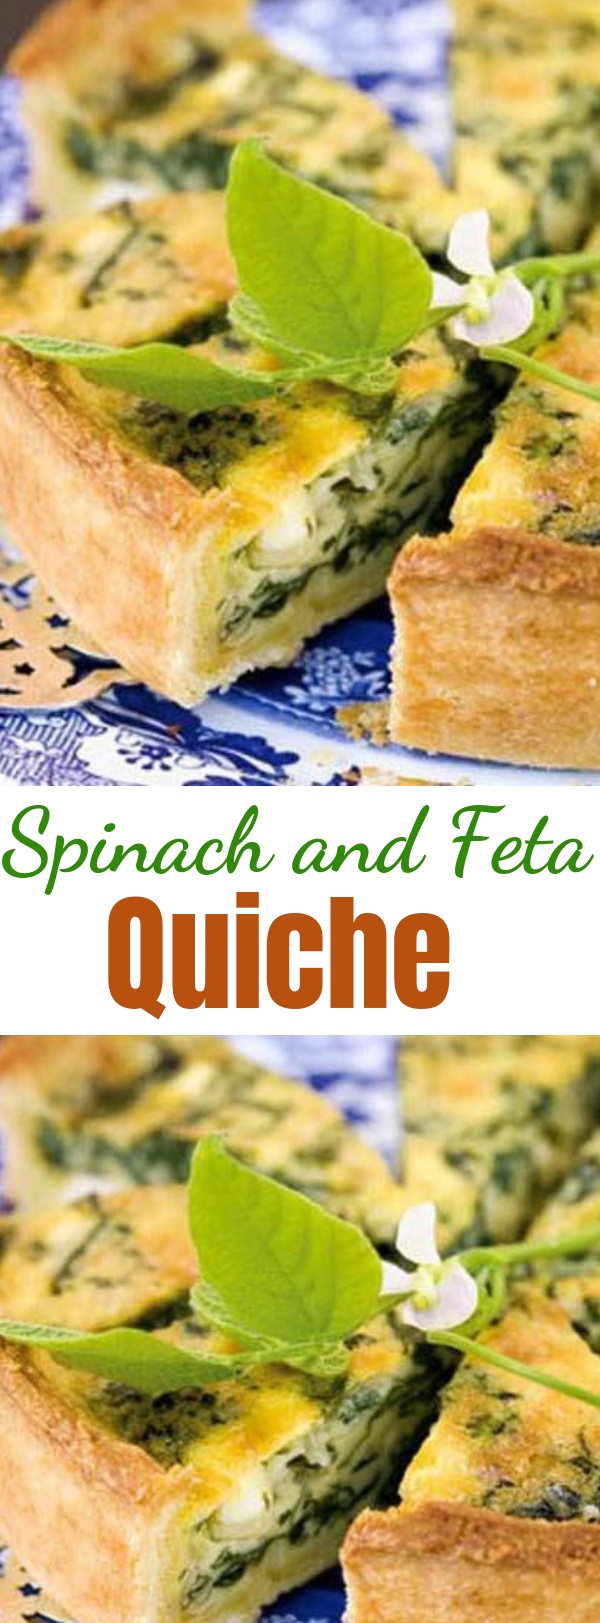 Spinach and Feta Quiche - Quiche is great for any meal: breakfast, lunch or dinner. It is a great recipe to turn to when you do not have a lot of time to spend in the kitchen. You can assemble a quiche in a matter of minutes, and the tasty results will never give away how effortless it was. #quiche #breakfast #spinach #feta